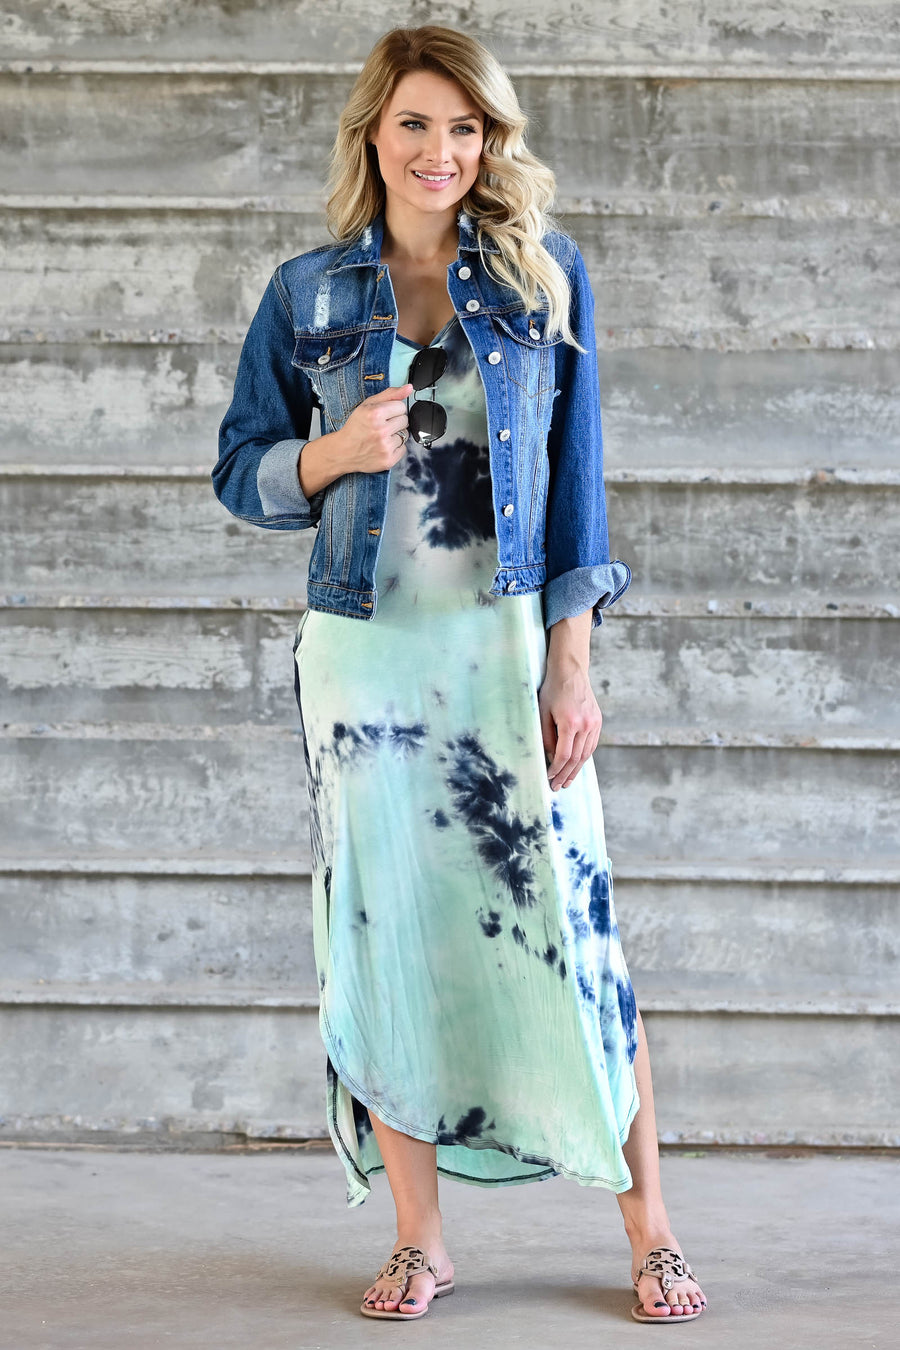 Let Them Hear You Tie Dye Maxi Dress - Mint womens trendy maxi dress closet candy front